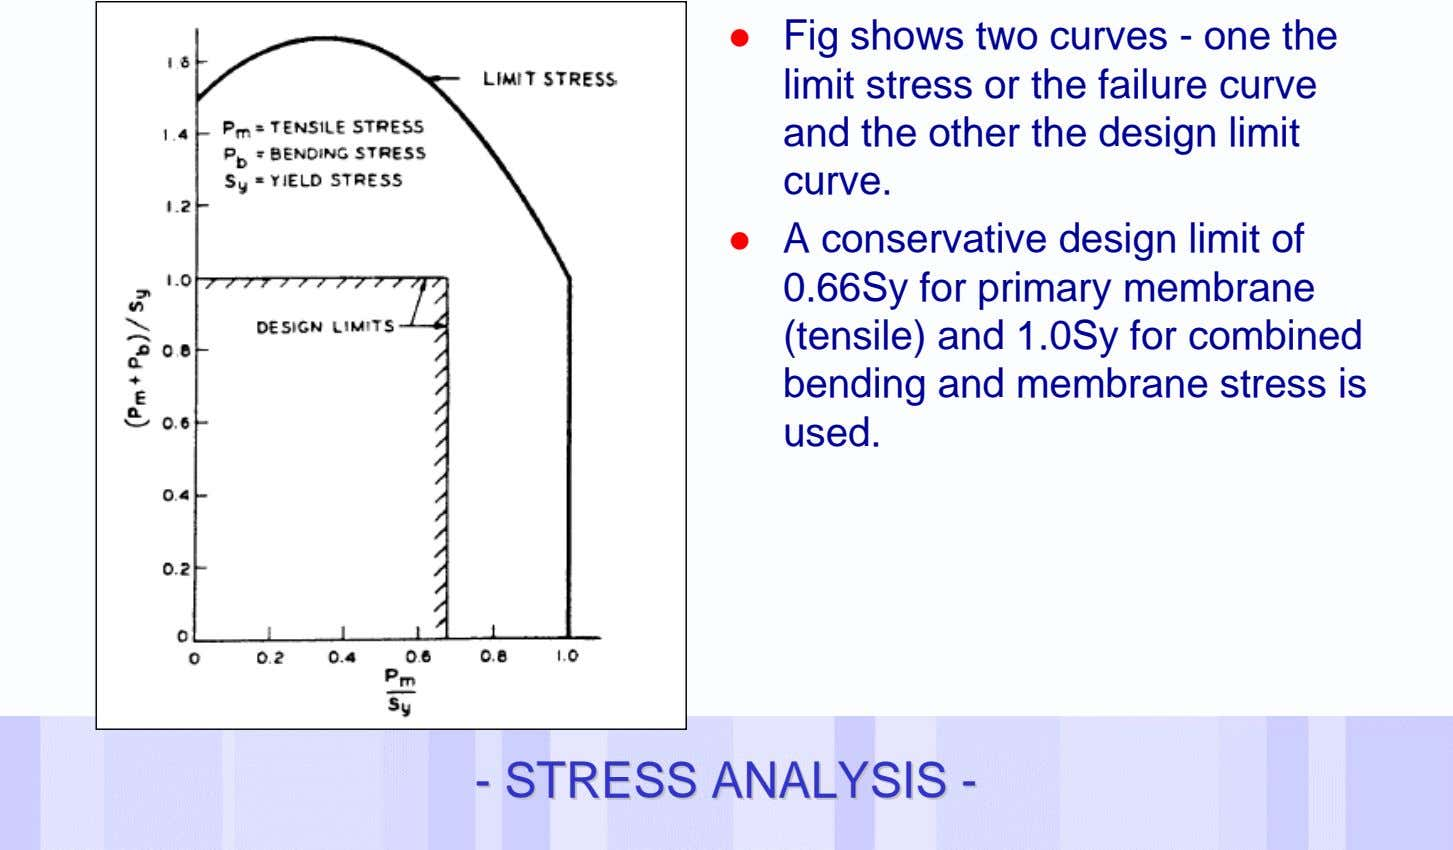 ! Fig shows two curves - one the limit stress or the failure curve and